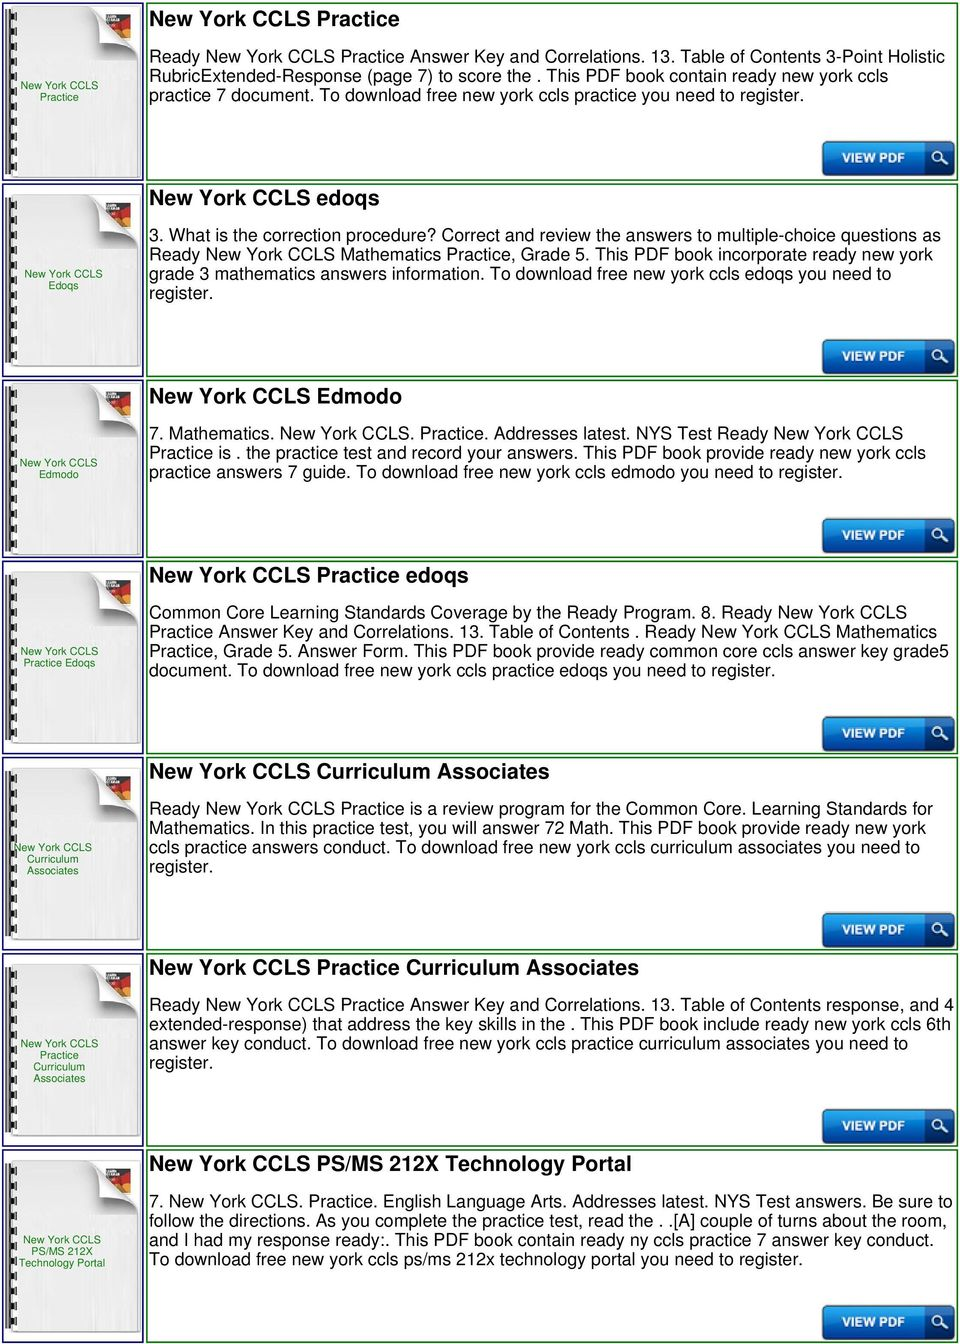 Ready new york ccls answer key math pdf this pdf book incorporate ready new york grade 3 mathematics answers information to download free fandeluxe Images